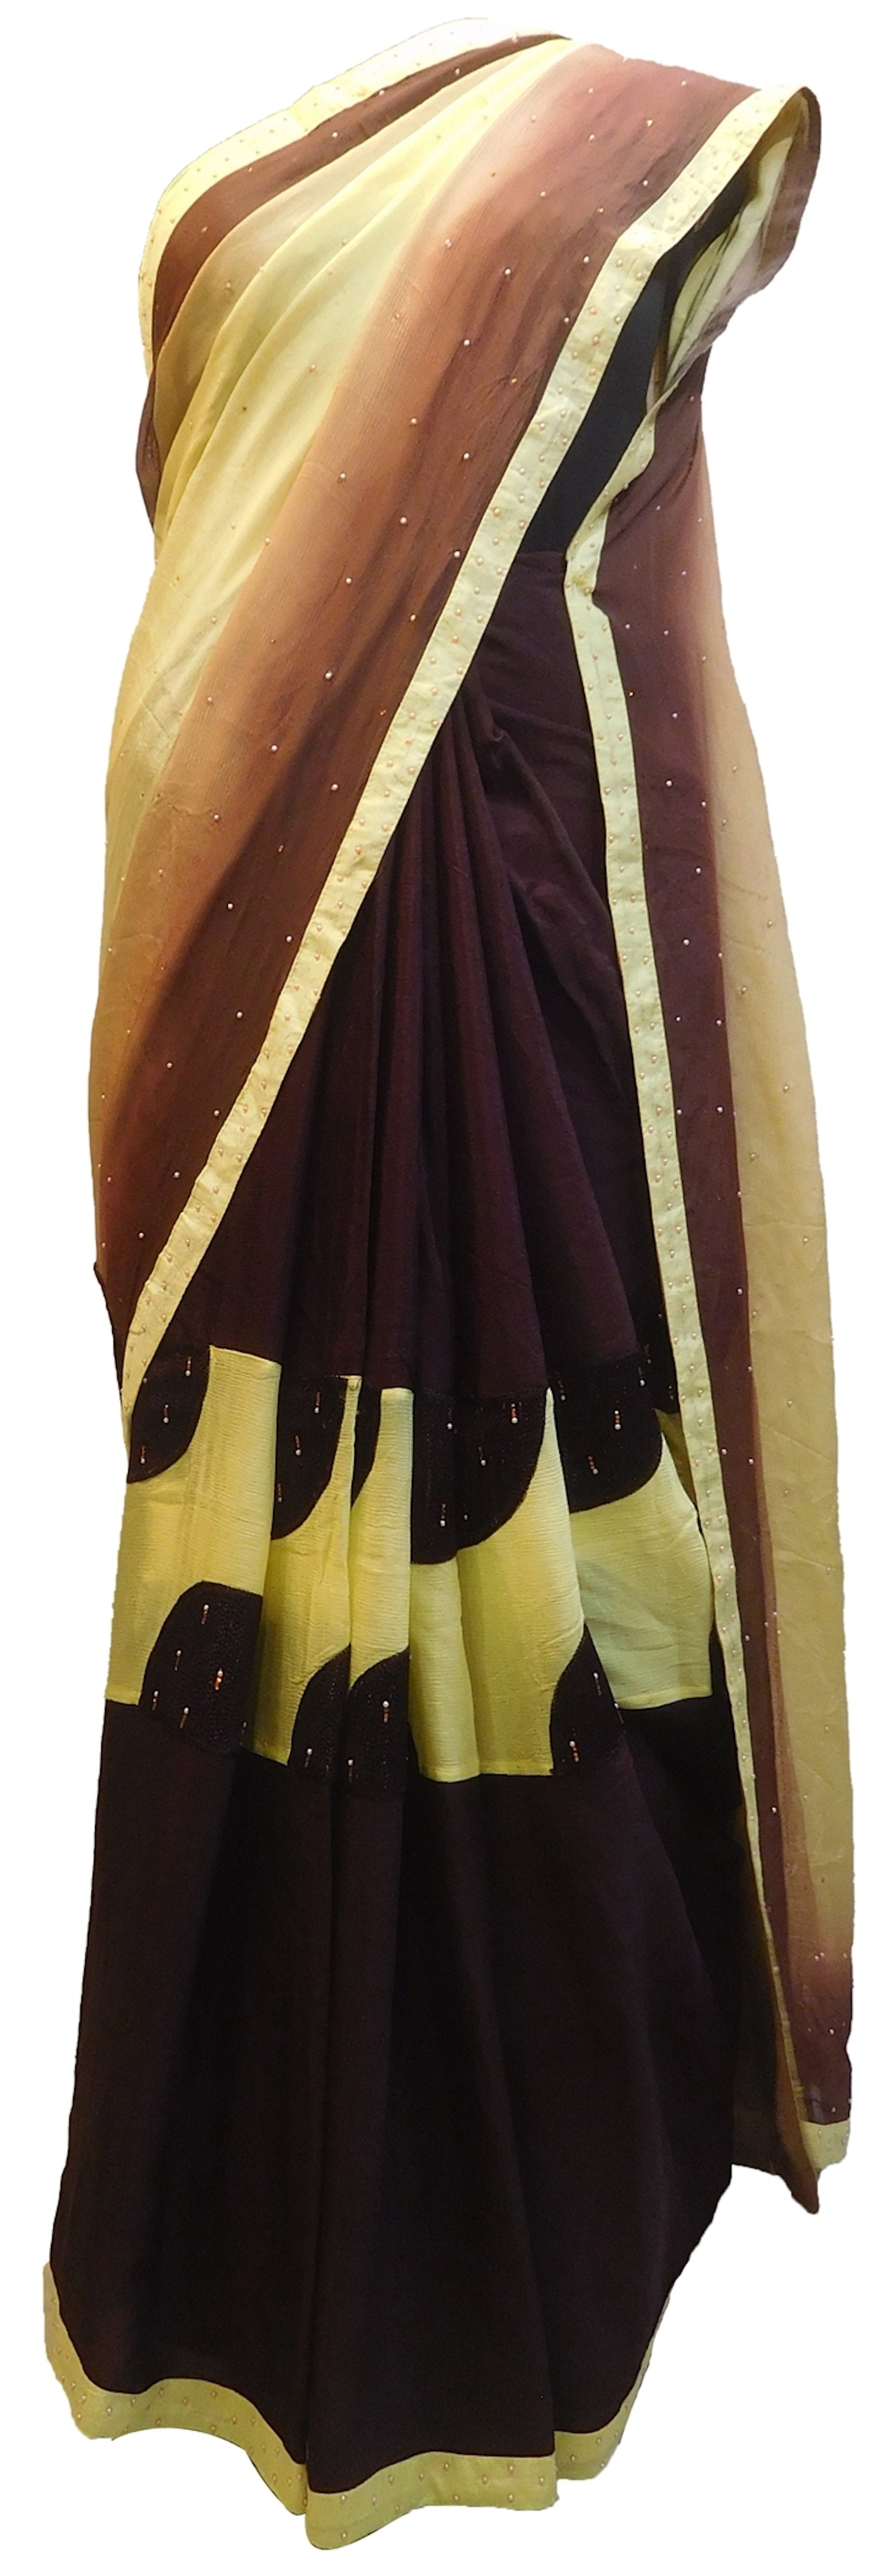 Coffee & Cream Designer Wedding Partywear Crepe (Chinon) Hand Embroidery Thread Pearl Stone Work Kolkata Saree Sari E439